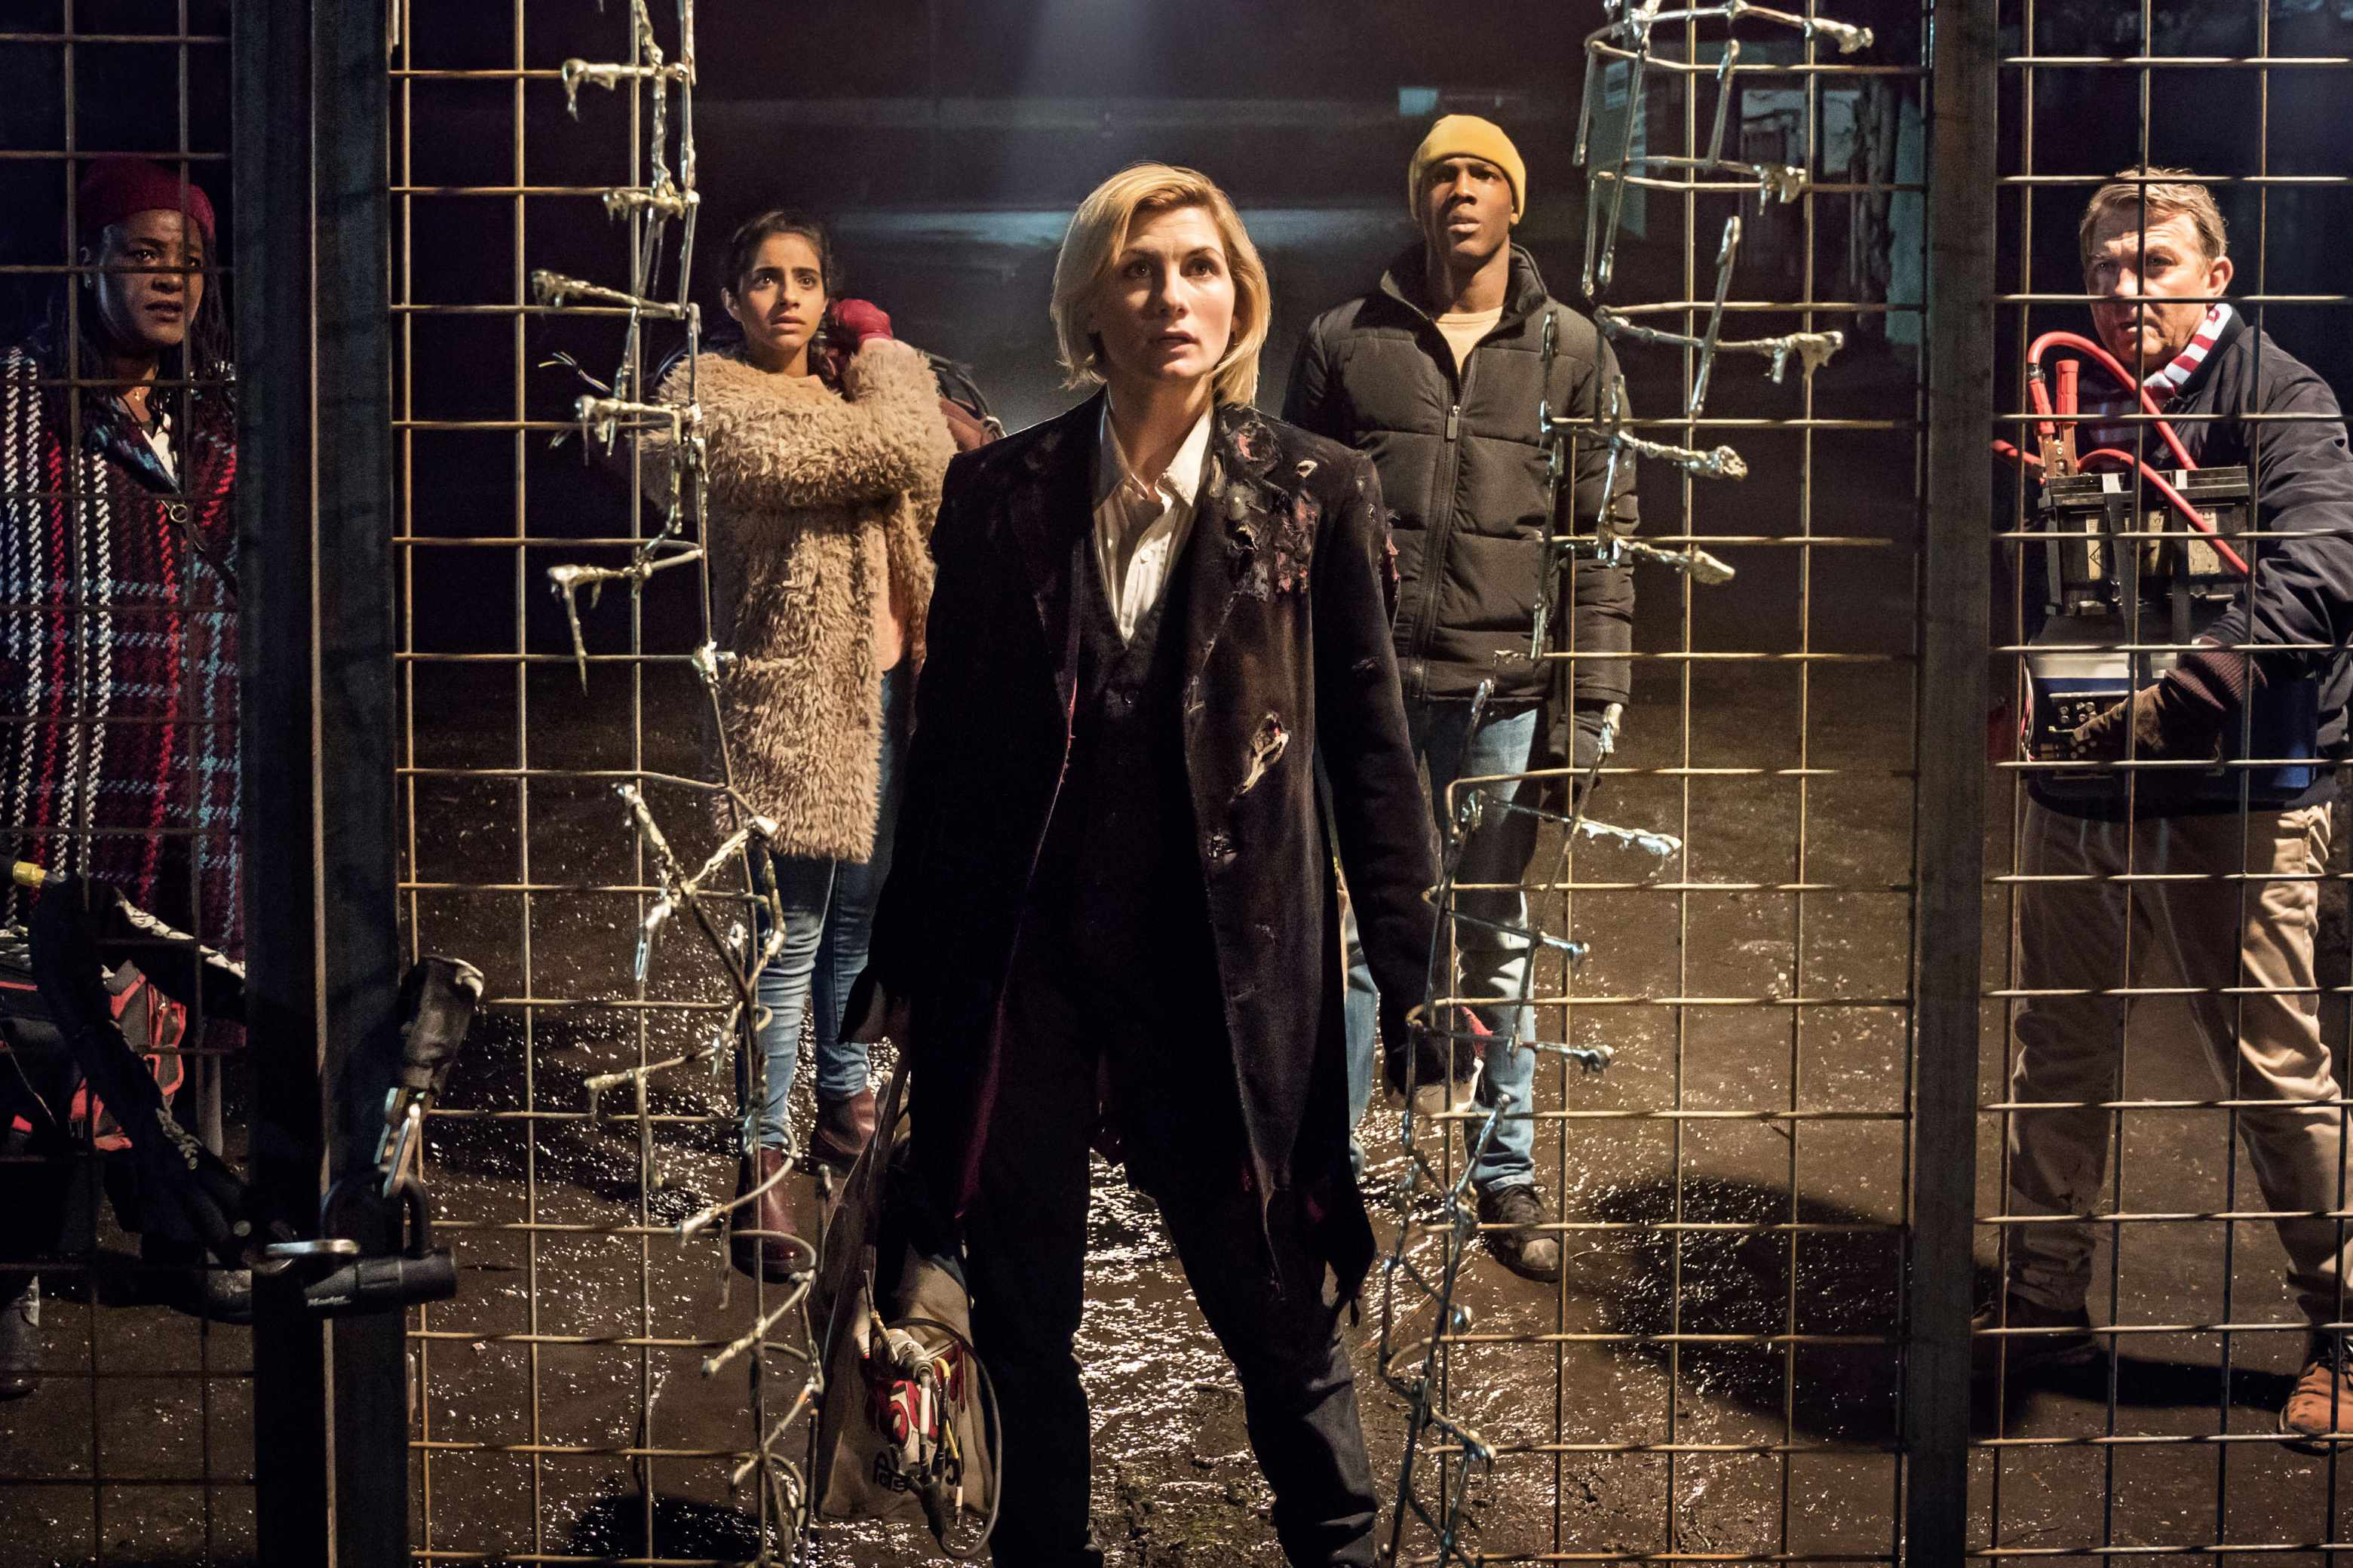 Sharon D Clarke, Mandip Gill, Jodie Whittaker, Tosin Cole and Bradley Walsh in Doctor Who series 11 (BBC, HF)